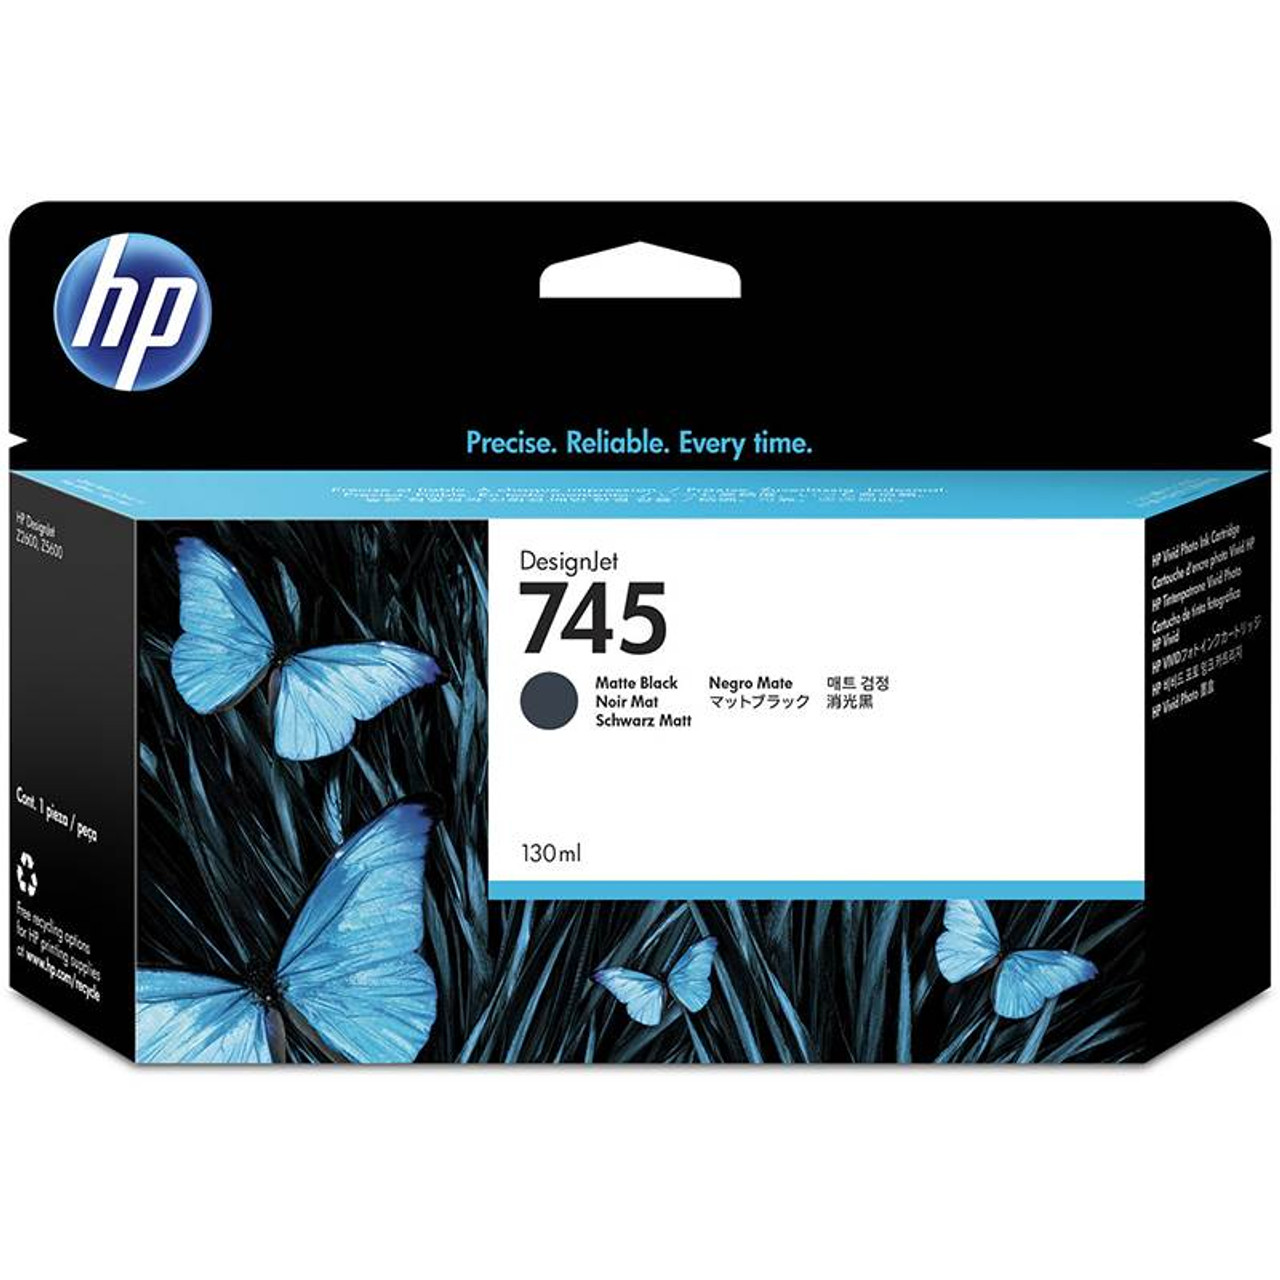 Image for HP745 130ML Ink Cartridge - Matte Black (F9J99A) CX Computer Superstore